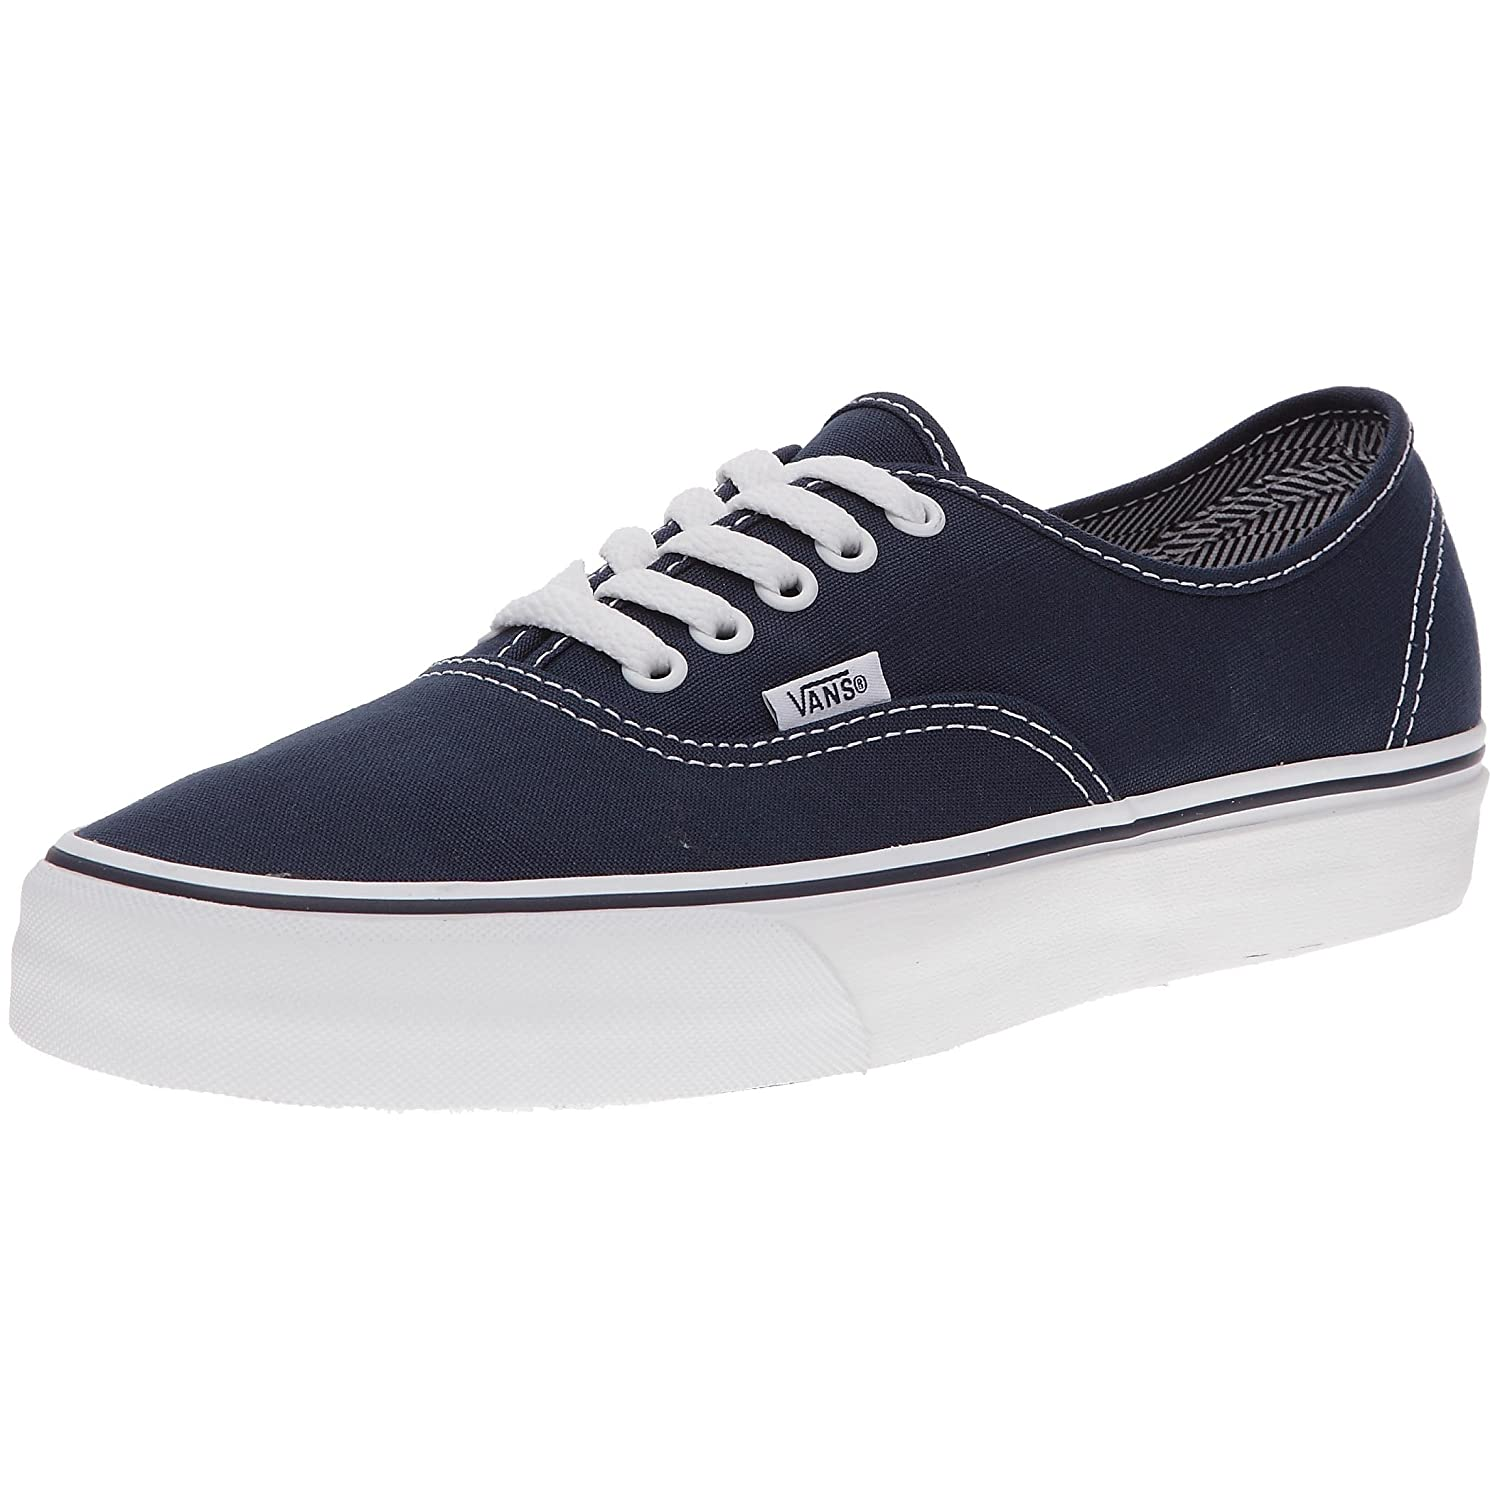 [バンズ] VANS VANS AUTHENTIC VEE3 B002CALDFC 10 B(M) US Women / 8.5 D(M) US Men|(Angle Stripe Lining) Dress Blues/True White (Angle Stripe Lining) Dress Blues/True White 10 B(M) US Women / 8.5 D(M) US Men